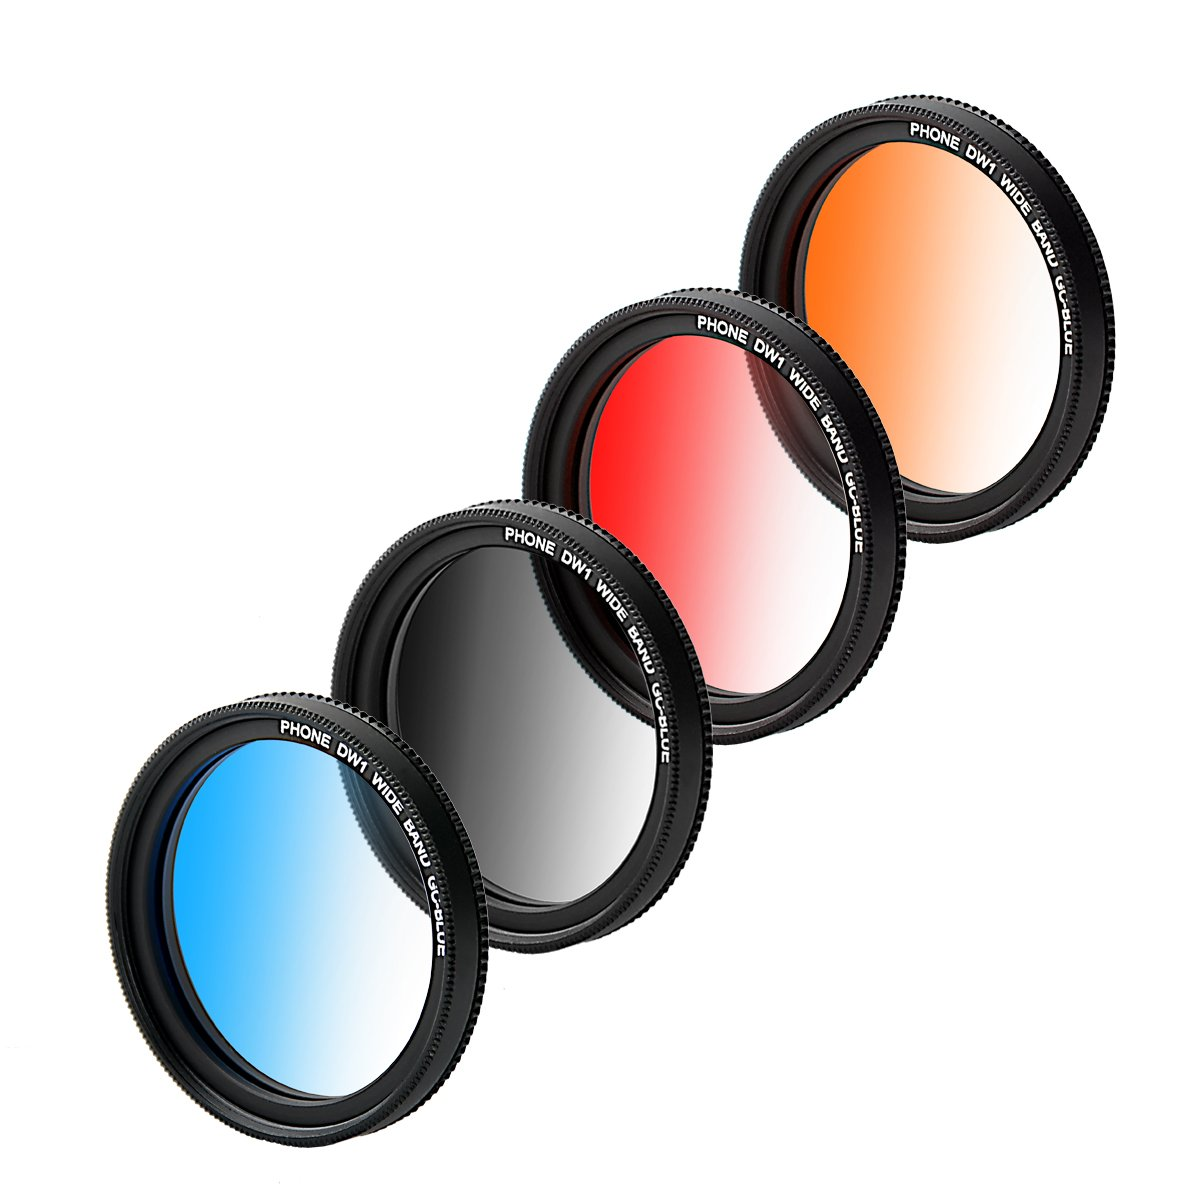 ZOMEI Professional Clip On 37mm Graduated Color Filters kit for for iPhone 6/6S/5/5S and Other Smartphone